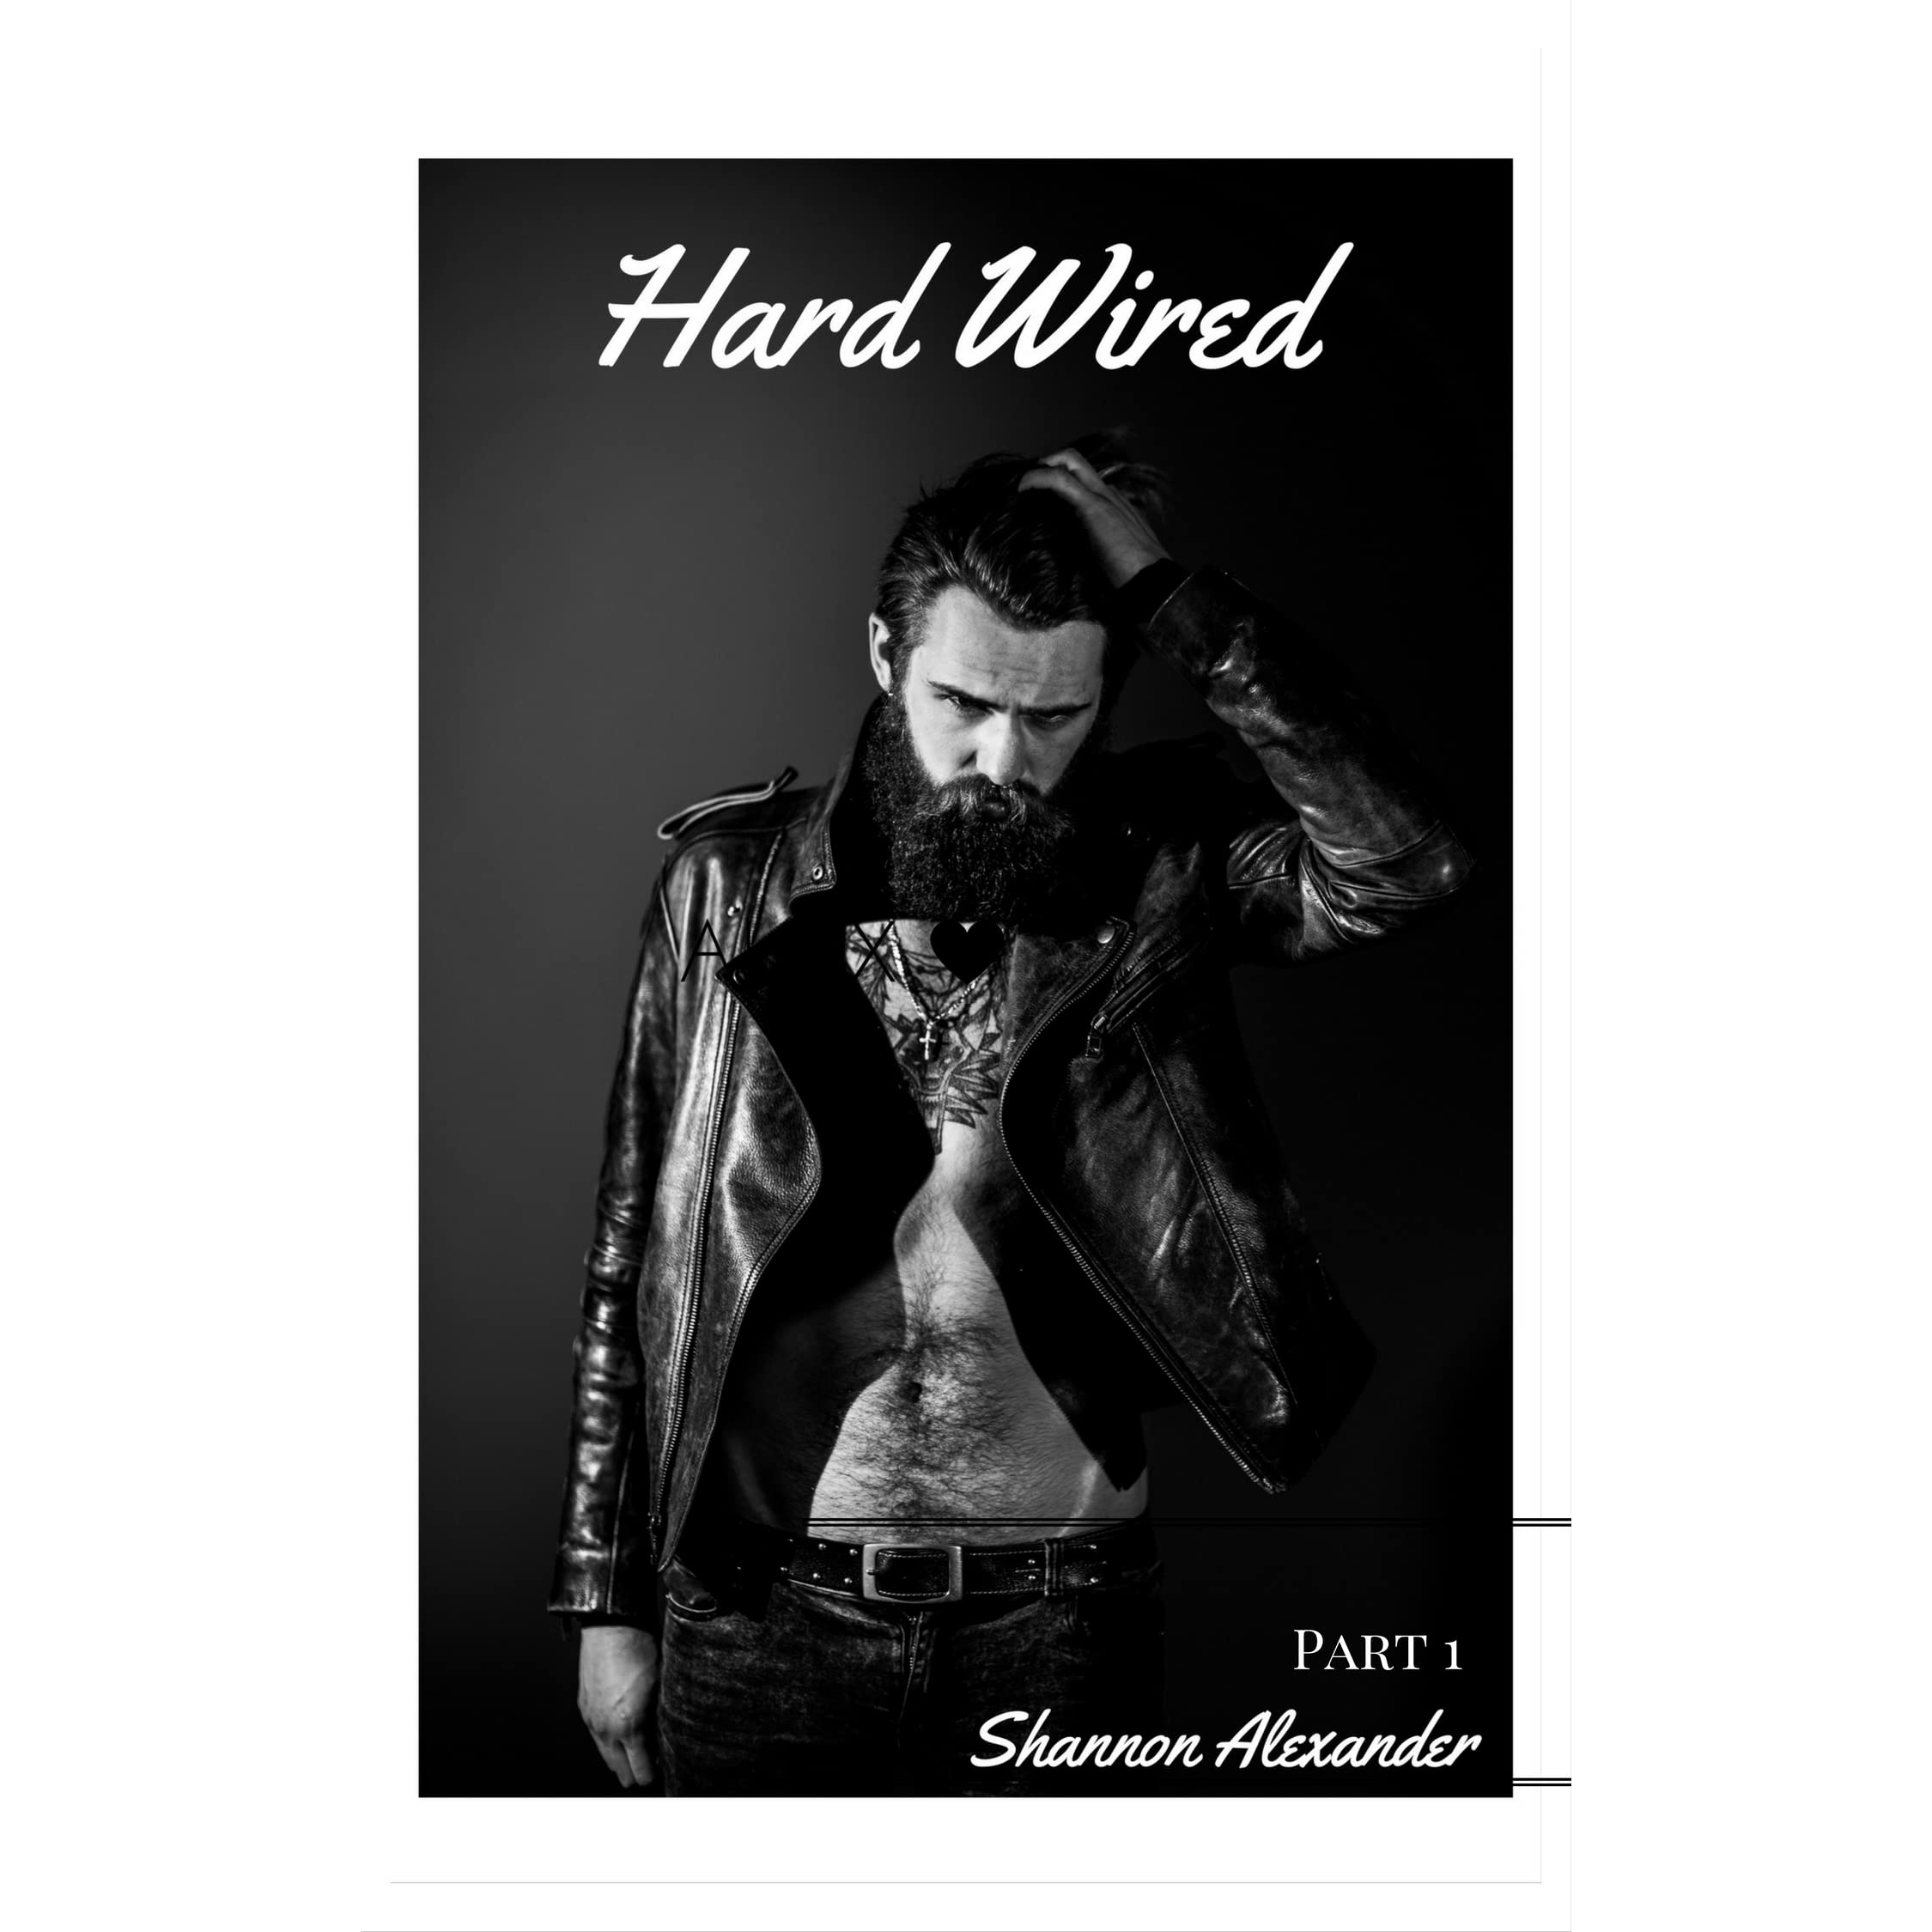 Hard Wired by Shannon Alexander